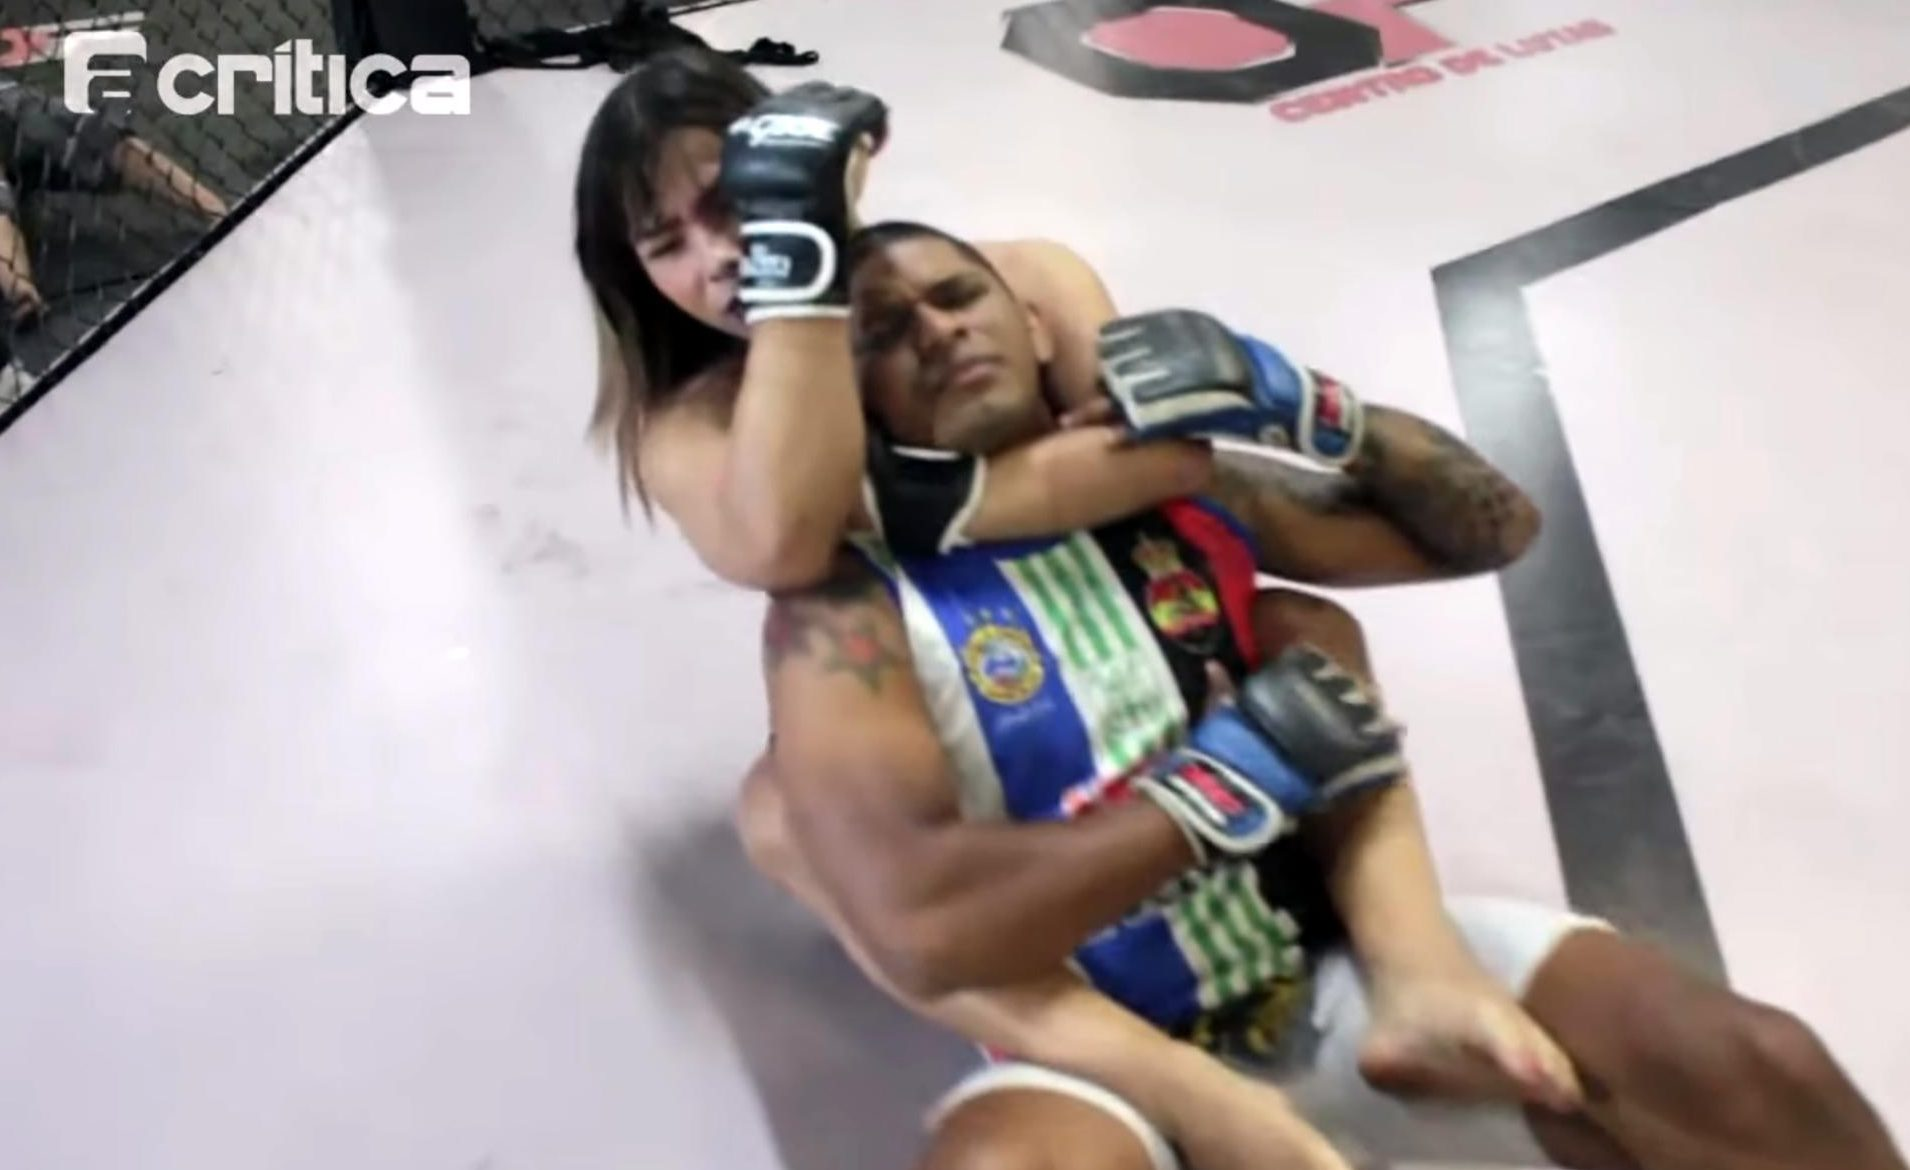 Anne Veriato will make her MMA debut against a man after switching from jiujitsu